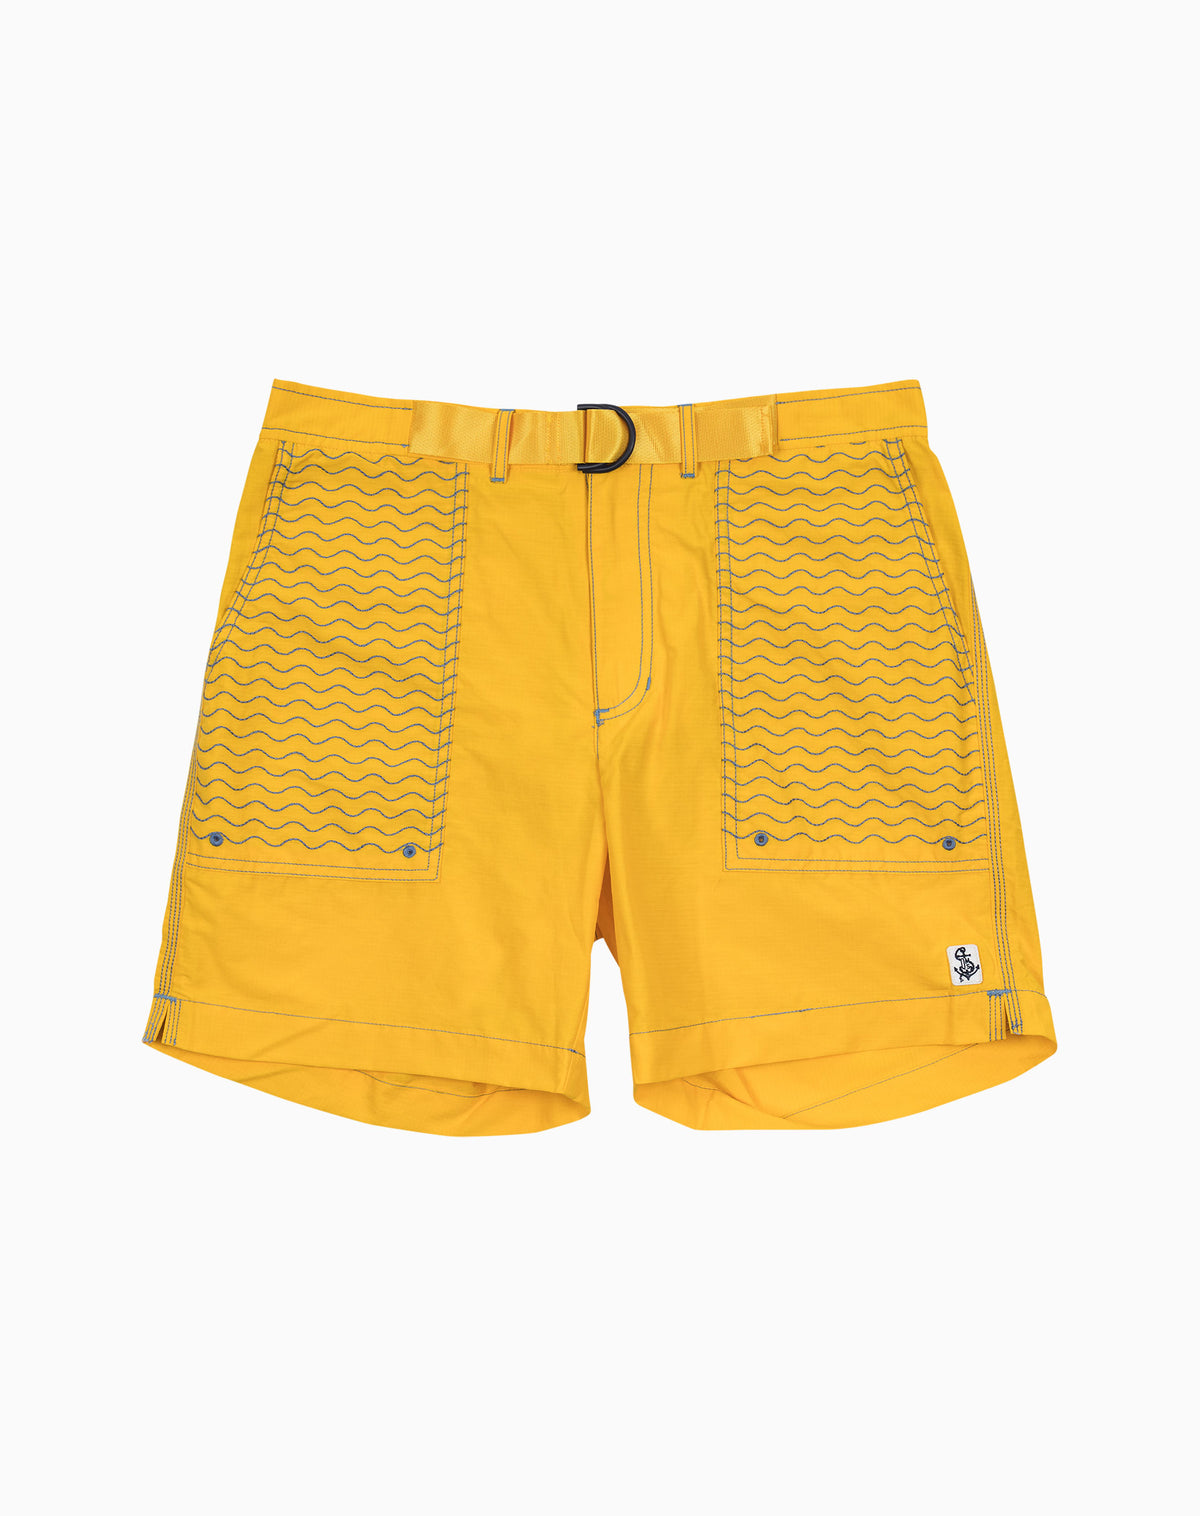 Wavy Utility Trunk in Yellow